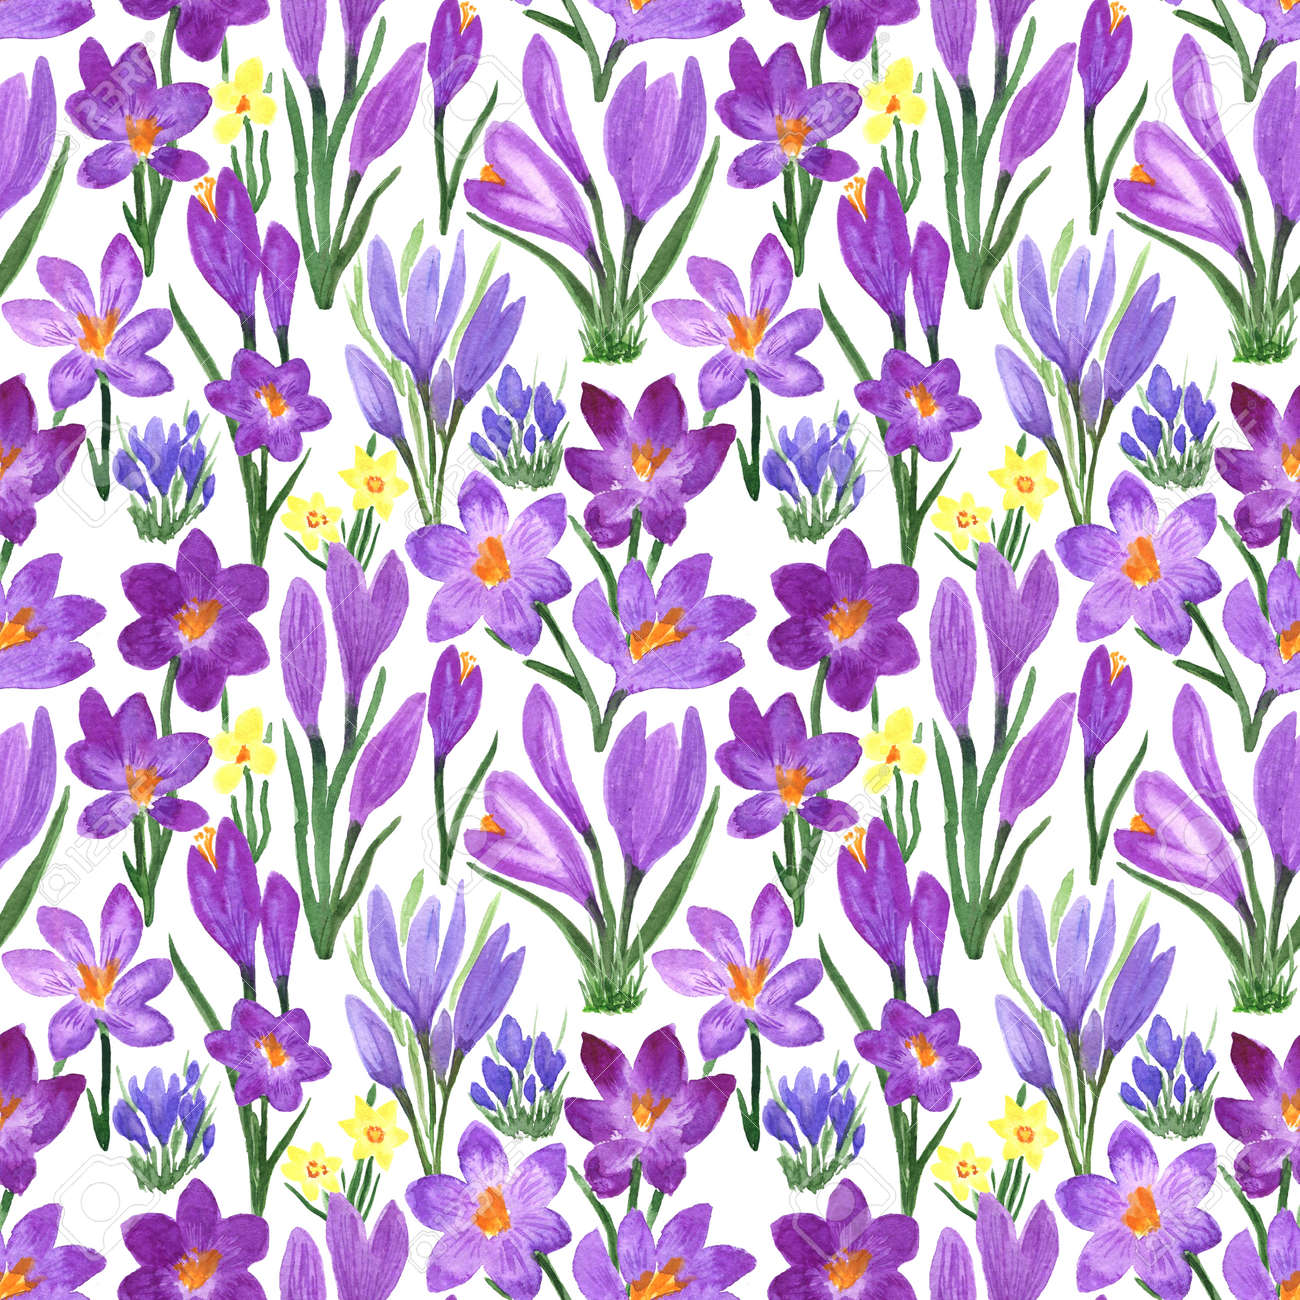 Waterclor colorful seamless pattern of spring flowers. Hand Illustration of primrose for creating fabrics, textile, decoupage, wallpapers, print, gift wrapping paper, invitations, textile. - 166064028